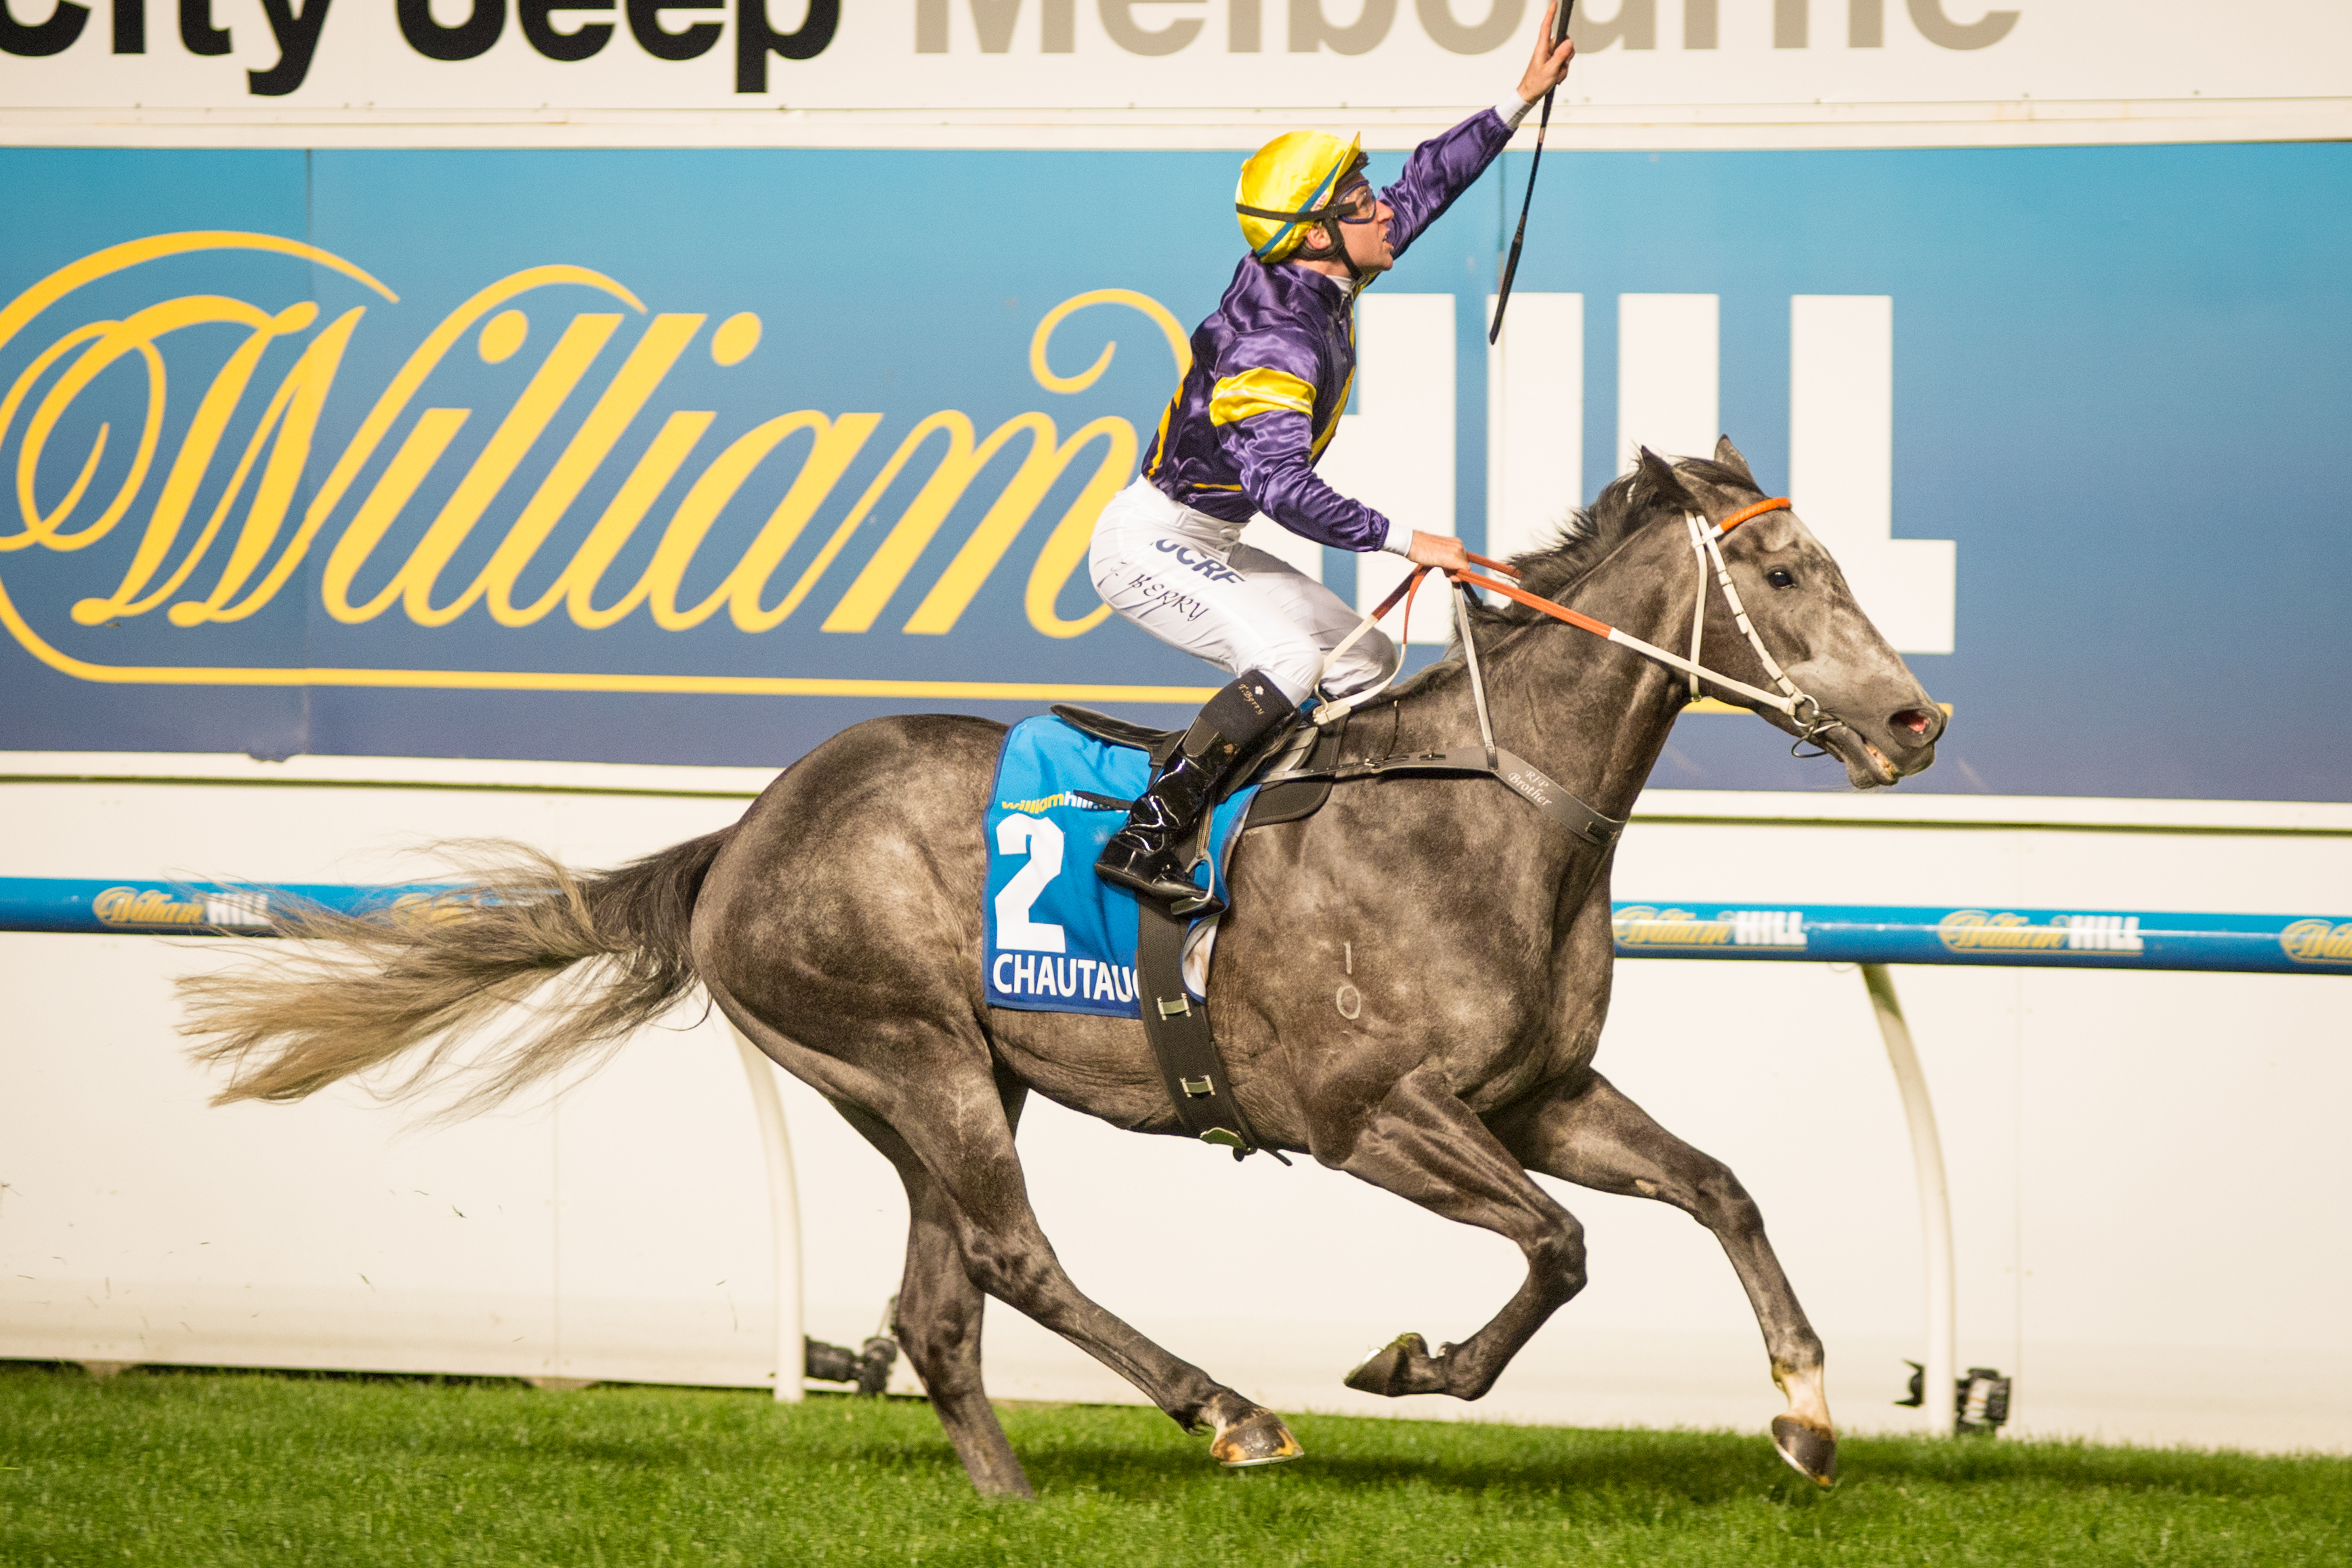 Race 7, Chautauqua, Tommy Berry_23-10-15, Moonee Valley, WIN_0081